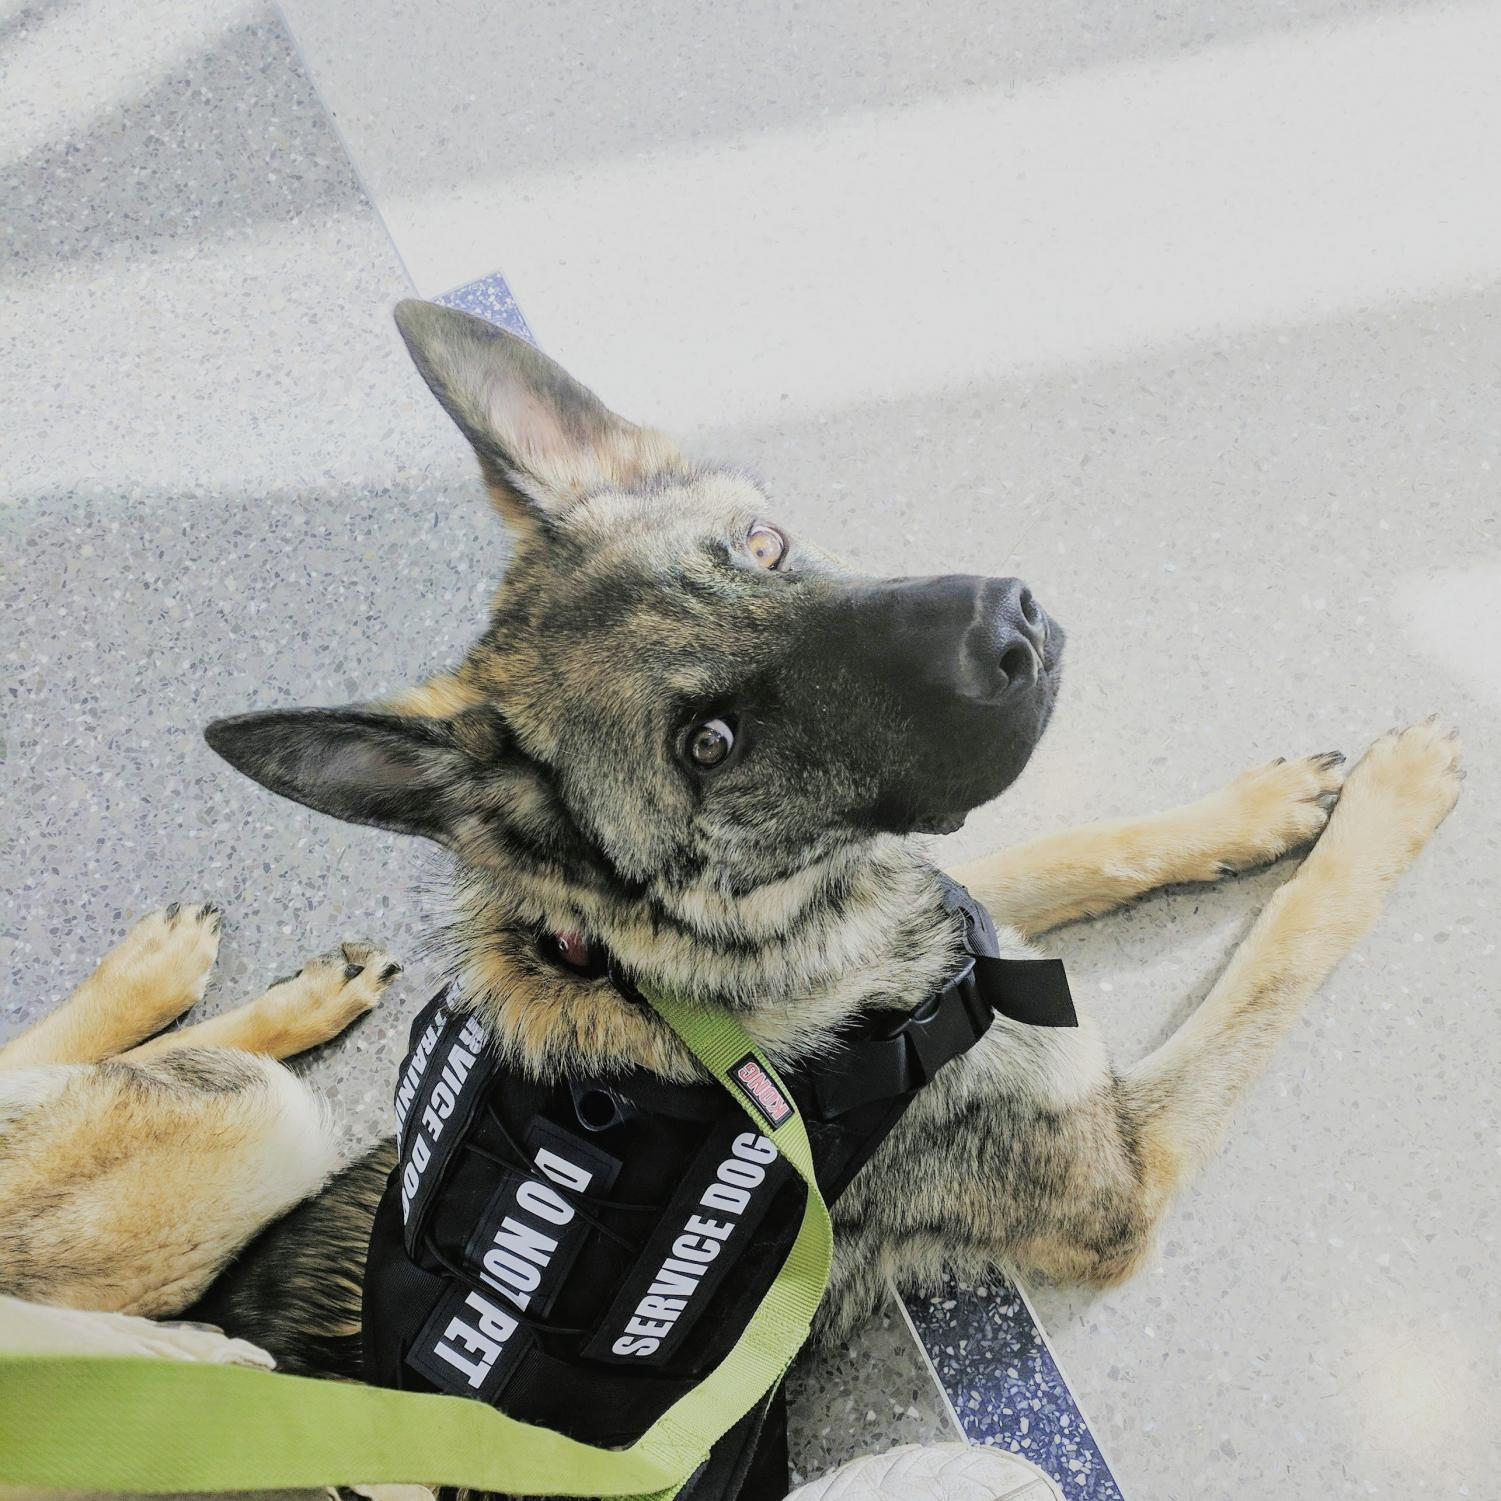 Sig is a German Shepherd  is full fledged service dog. He is 3 1/2 years old. He was trained for 15 months in order to have his task training  and public access training well enough to be a full fledged service dog.